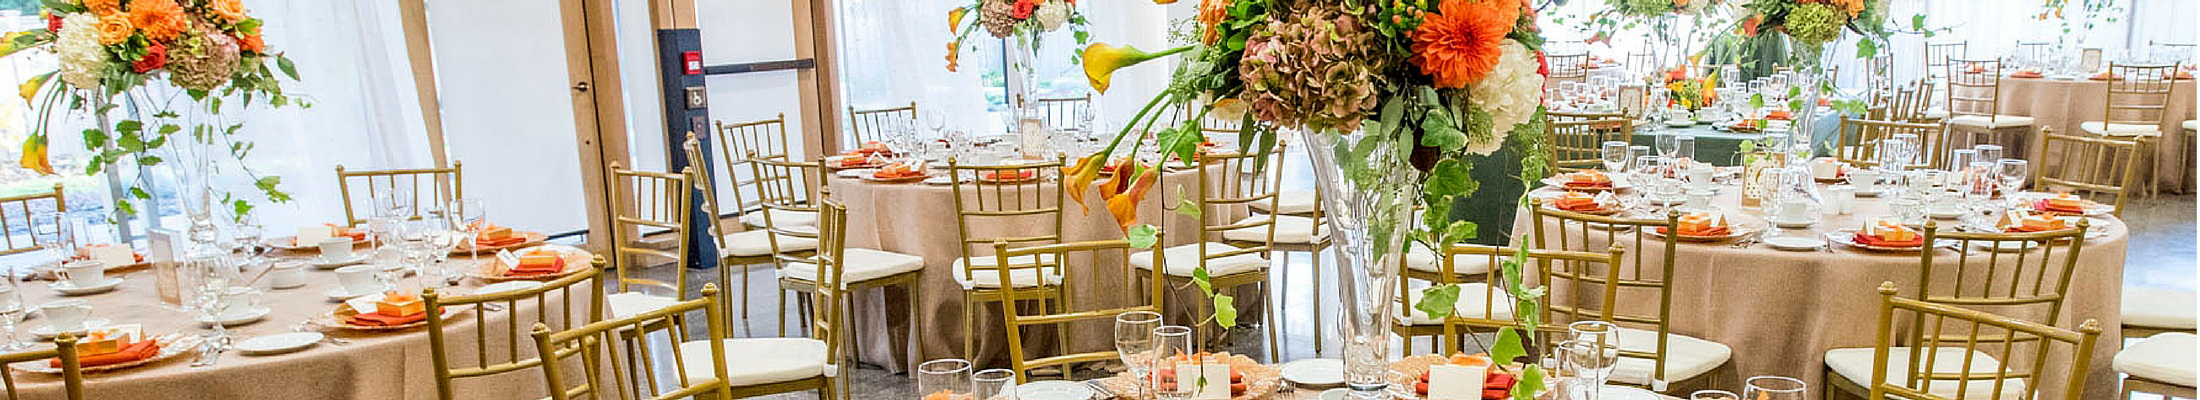 Caledon rustic wedding with chivari chairs and autumn floral decor